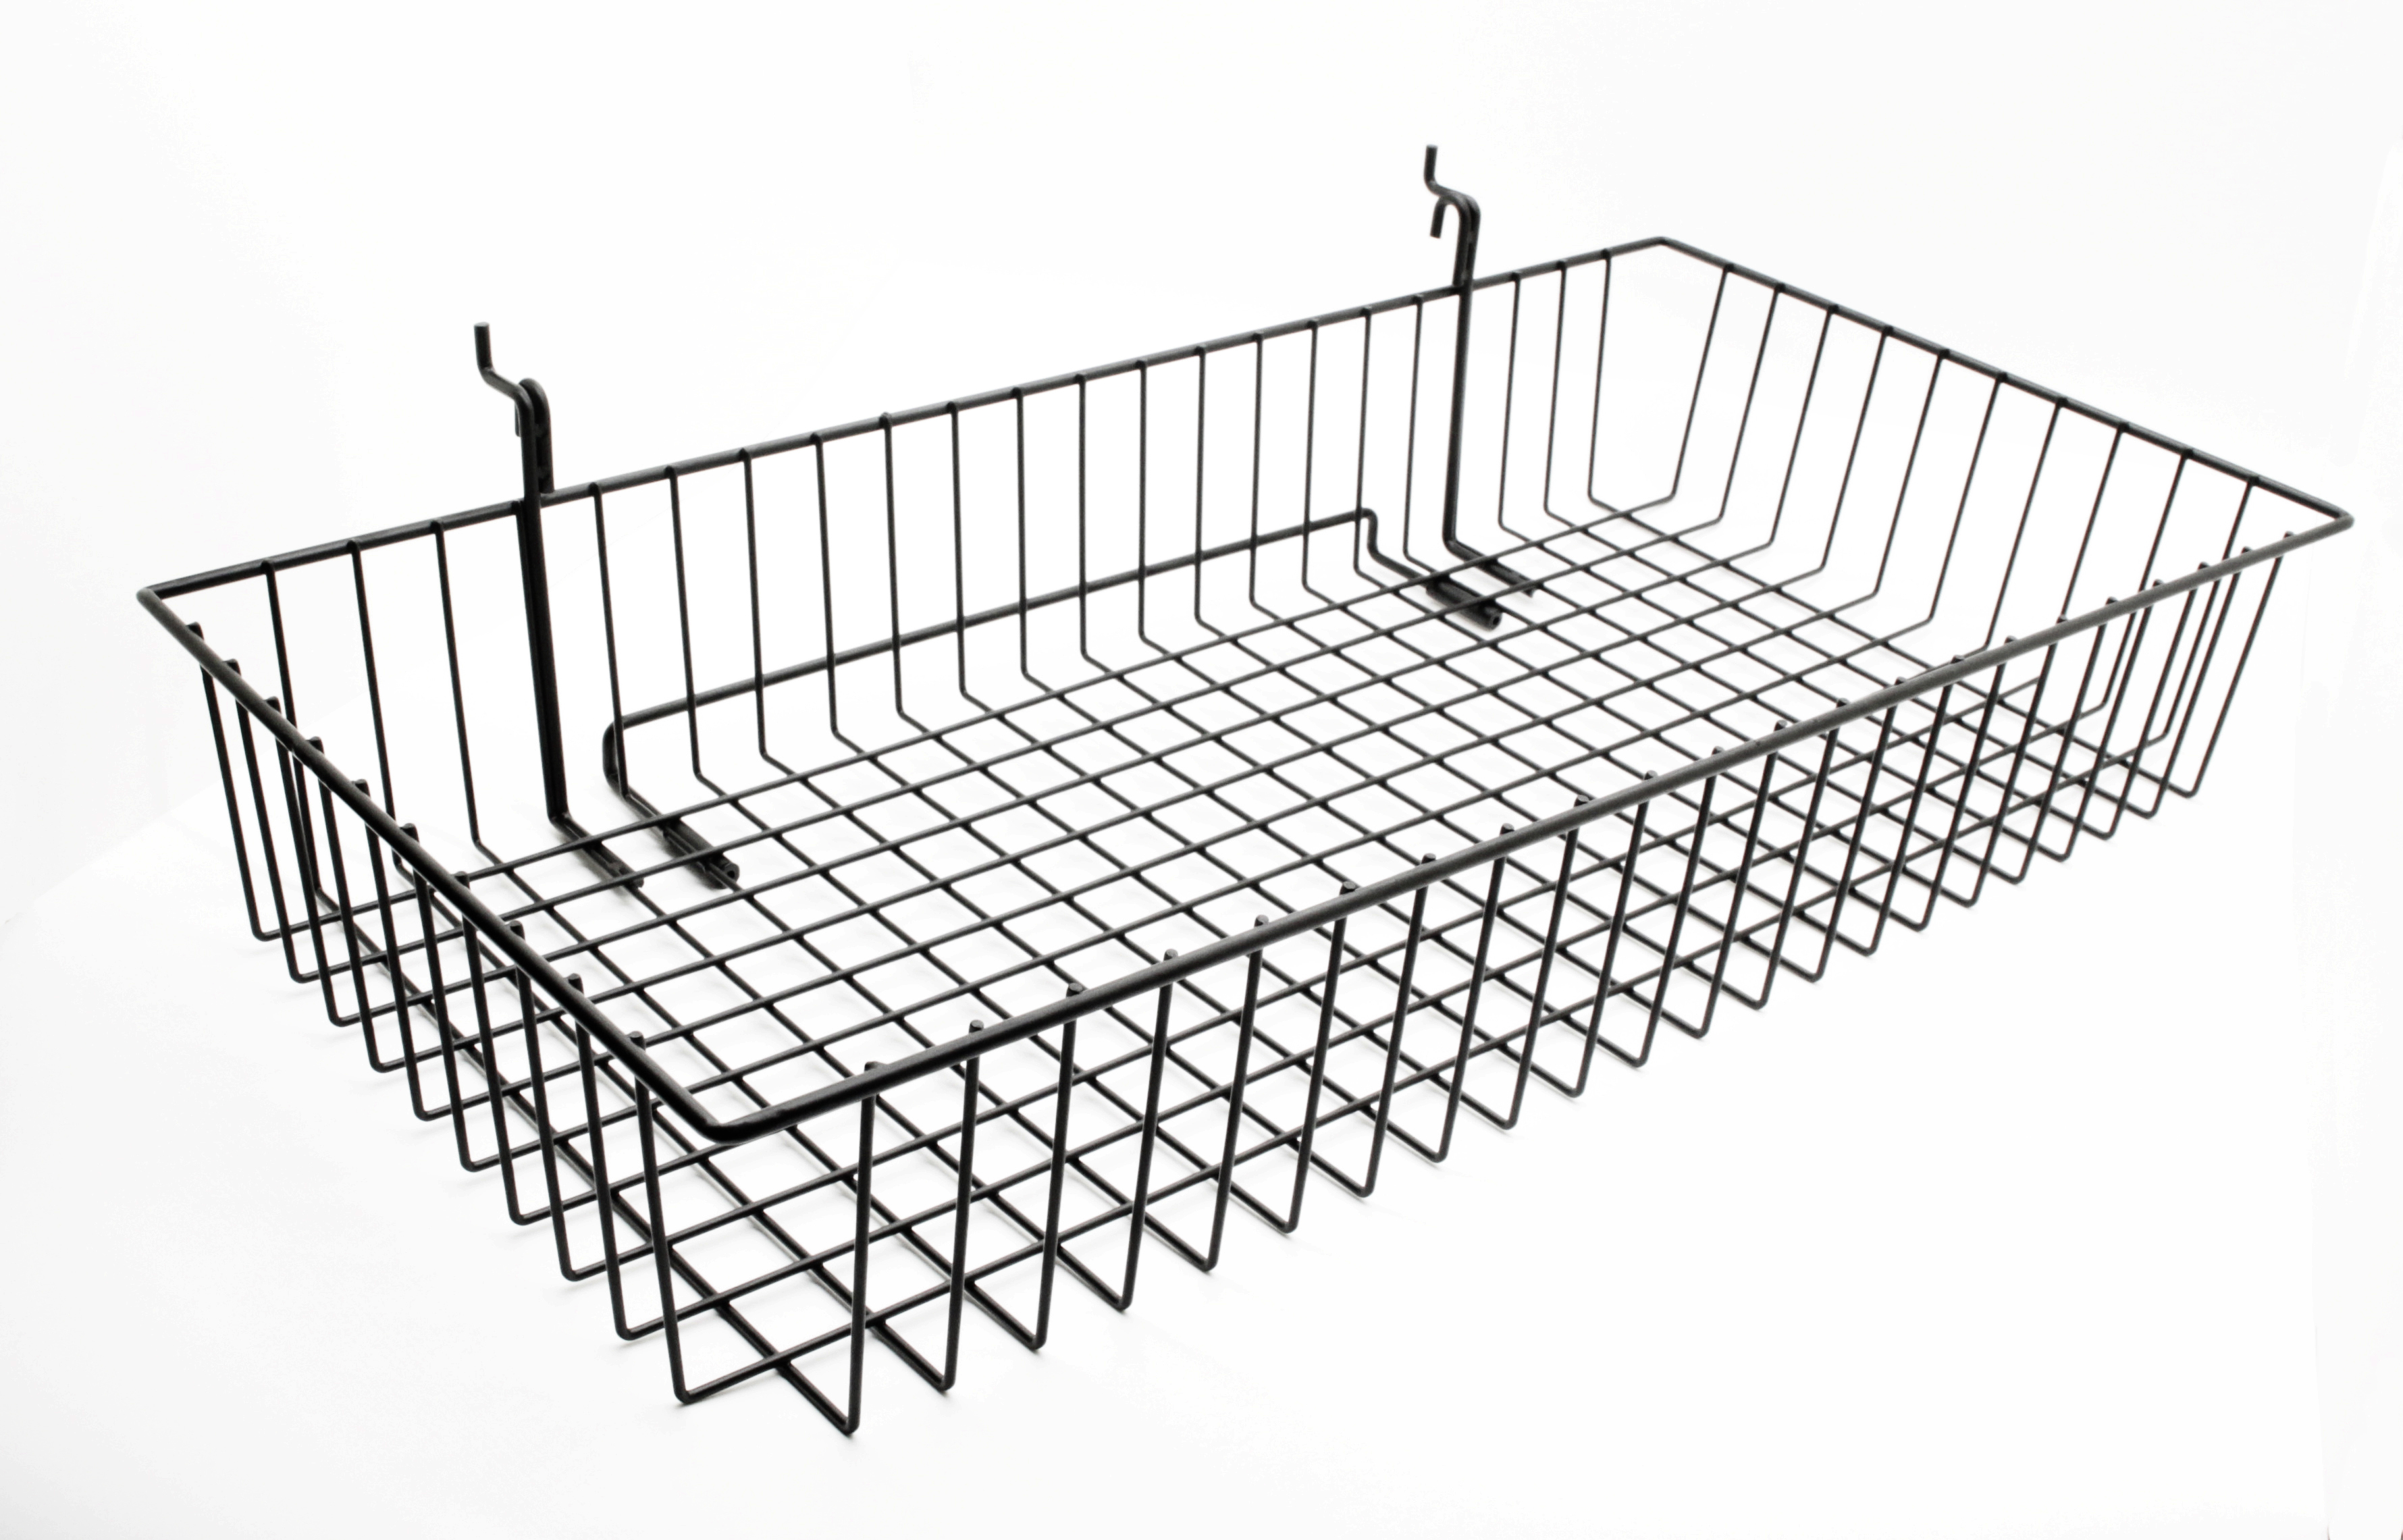 24x12 Metal Gridwall Basket Wire Holder Slatwall Hanging Basket Dump Bin